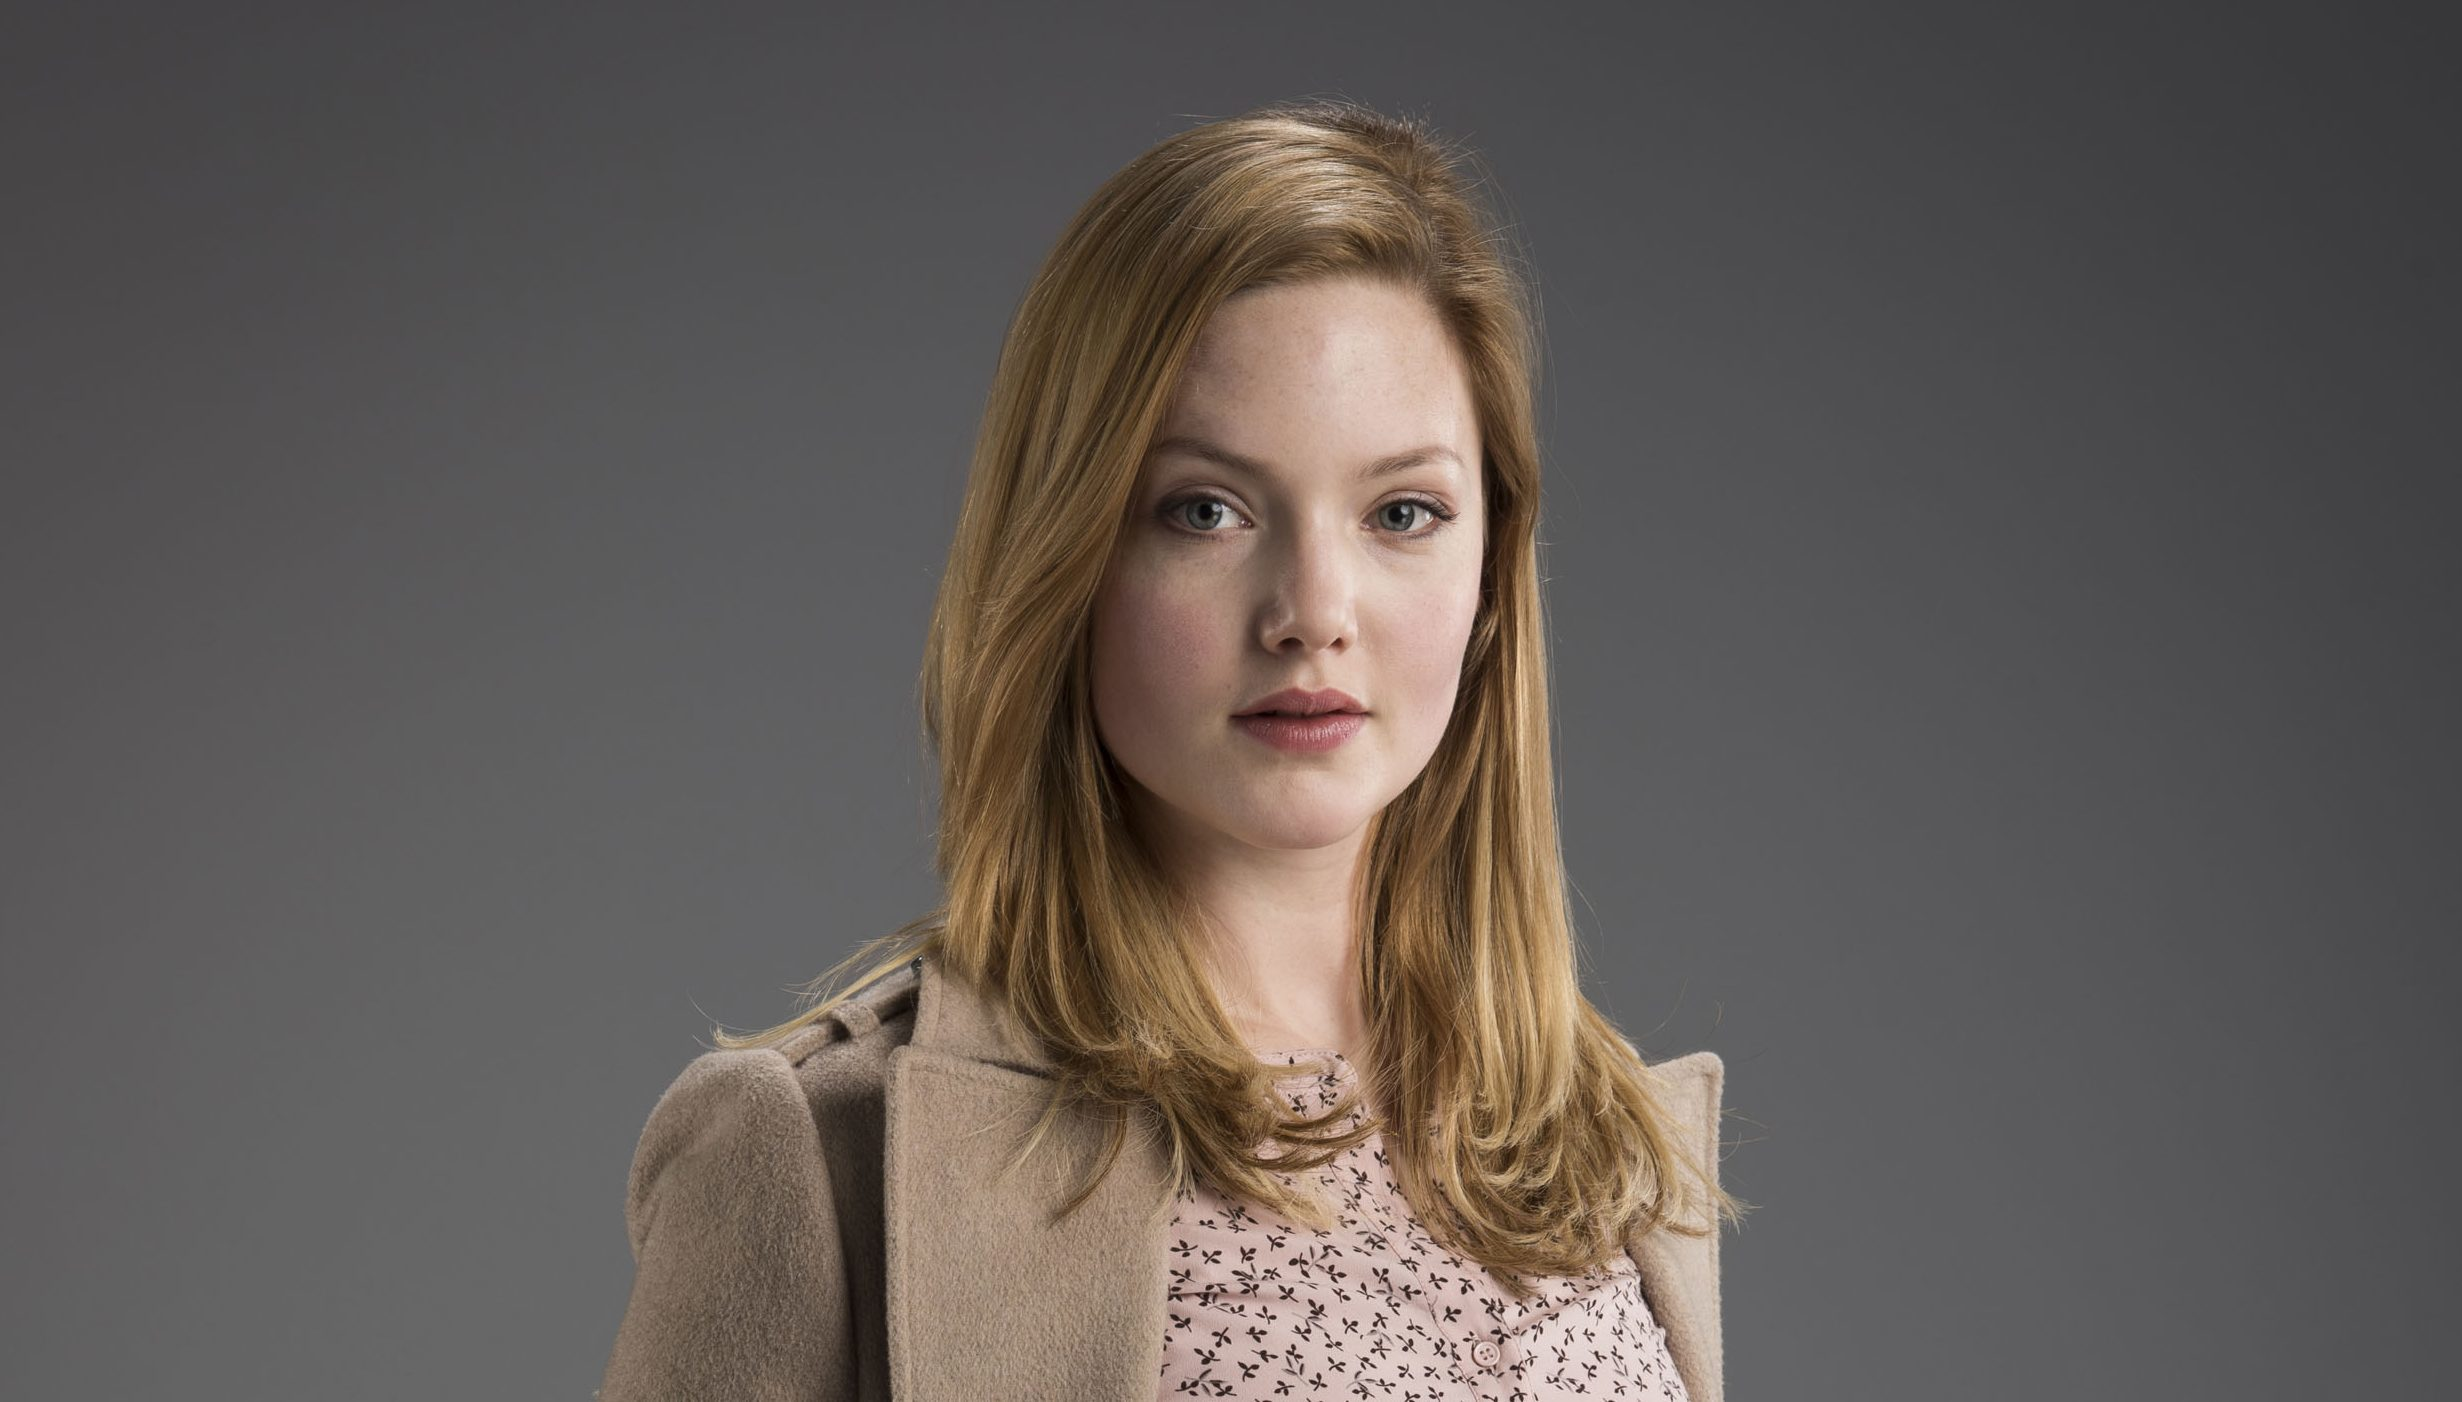 Holliday Grainger (Bronte Film & TV / Steffan Hill)